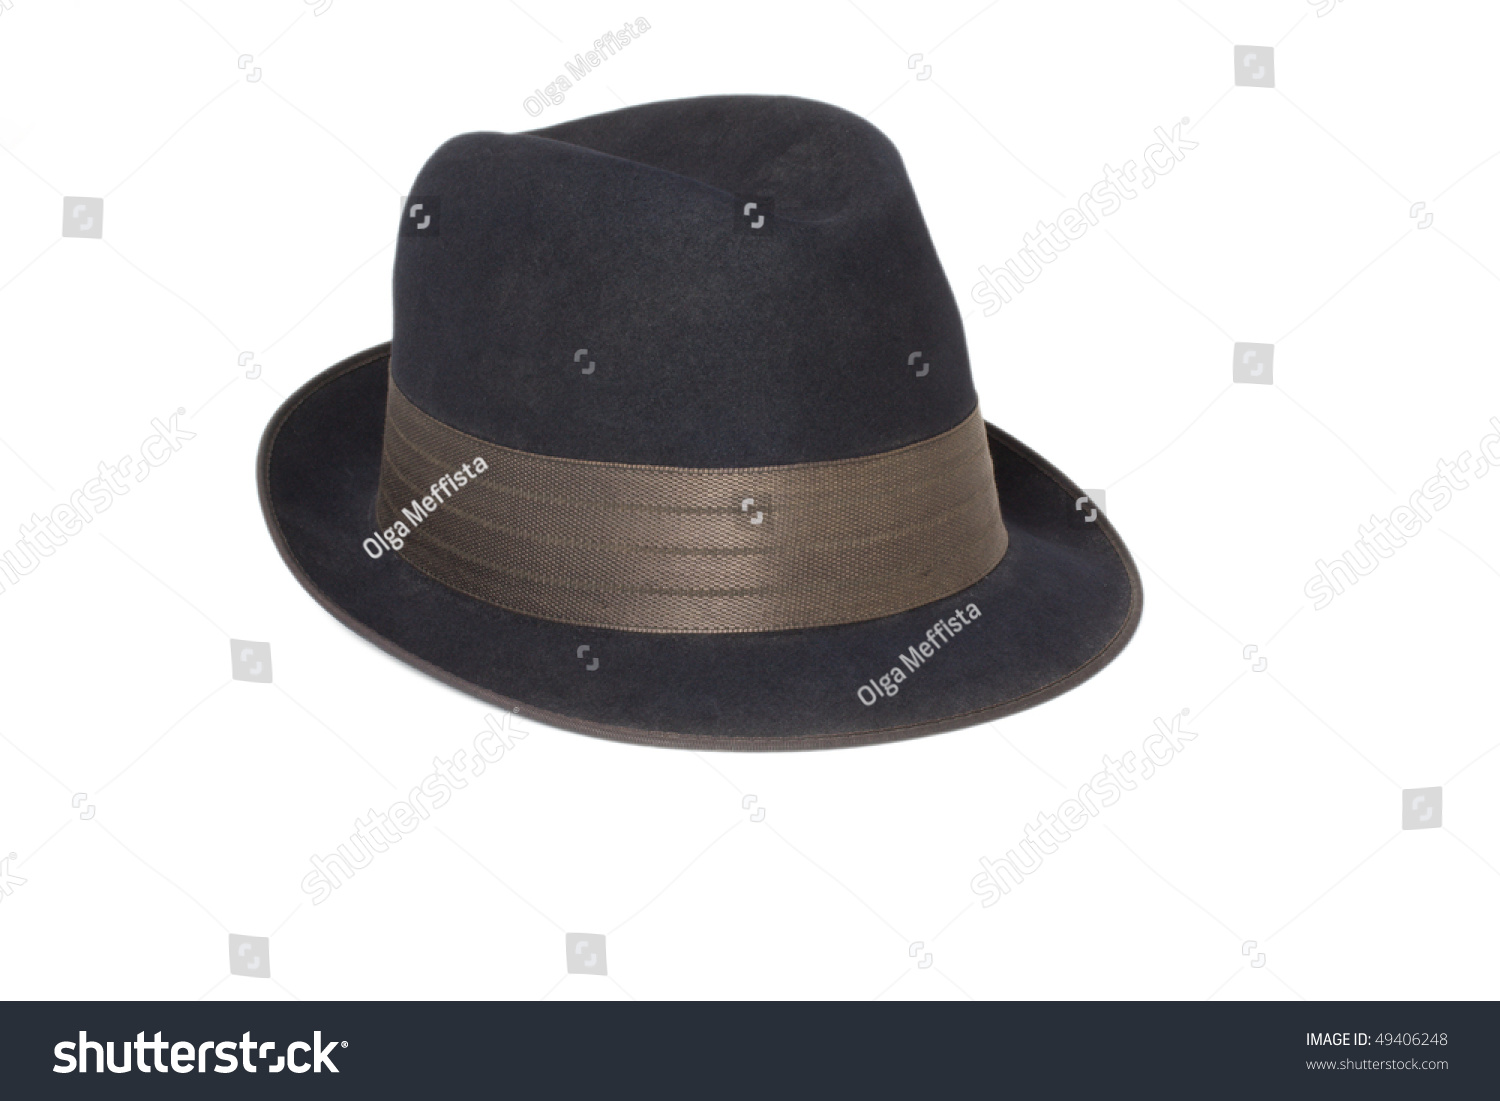 black classic men's hat on a white background #49406248